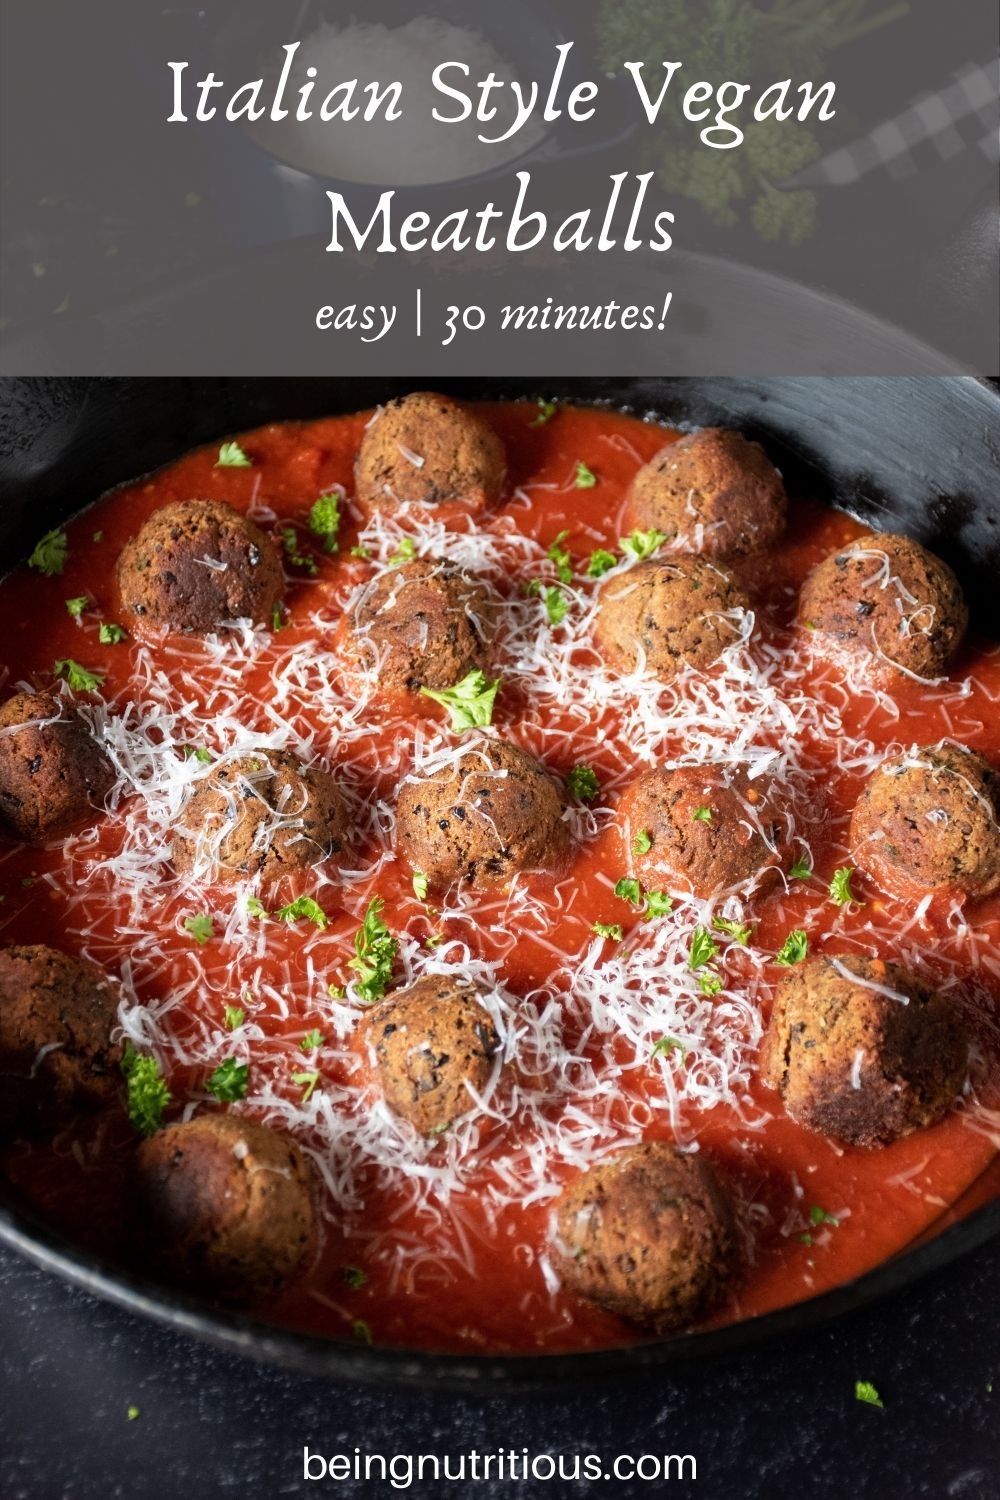 Skillet with meatballs made of black beans with marinara sauce. Text overlay: Italian Style Black Bean Meatballs; easy, 30 minutes!